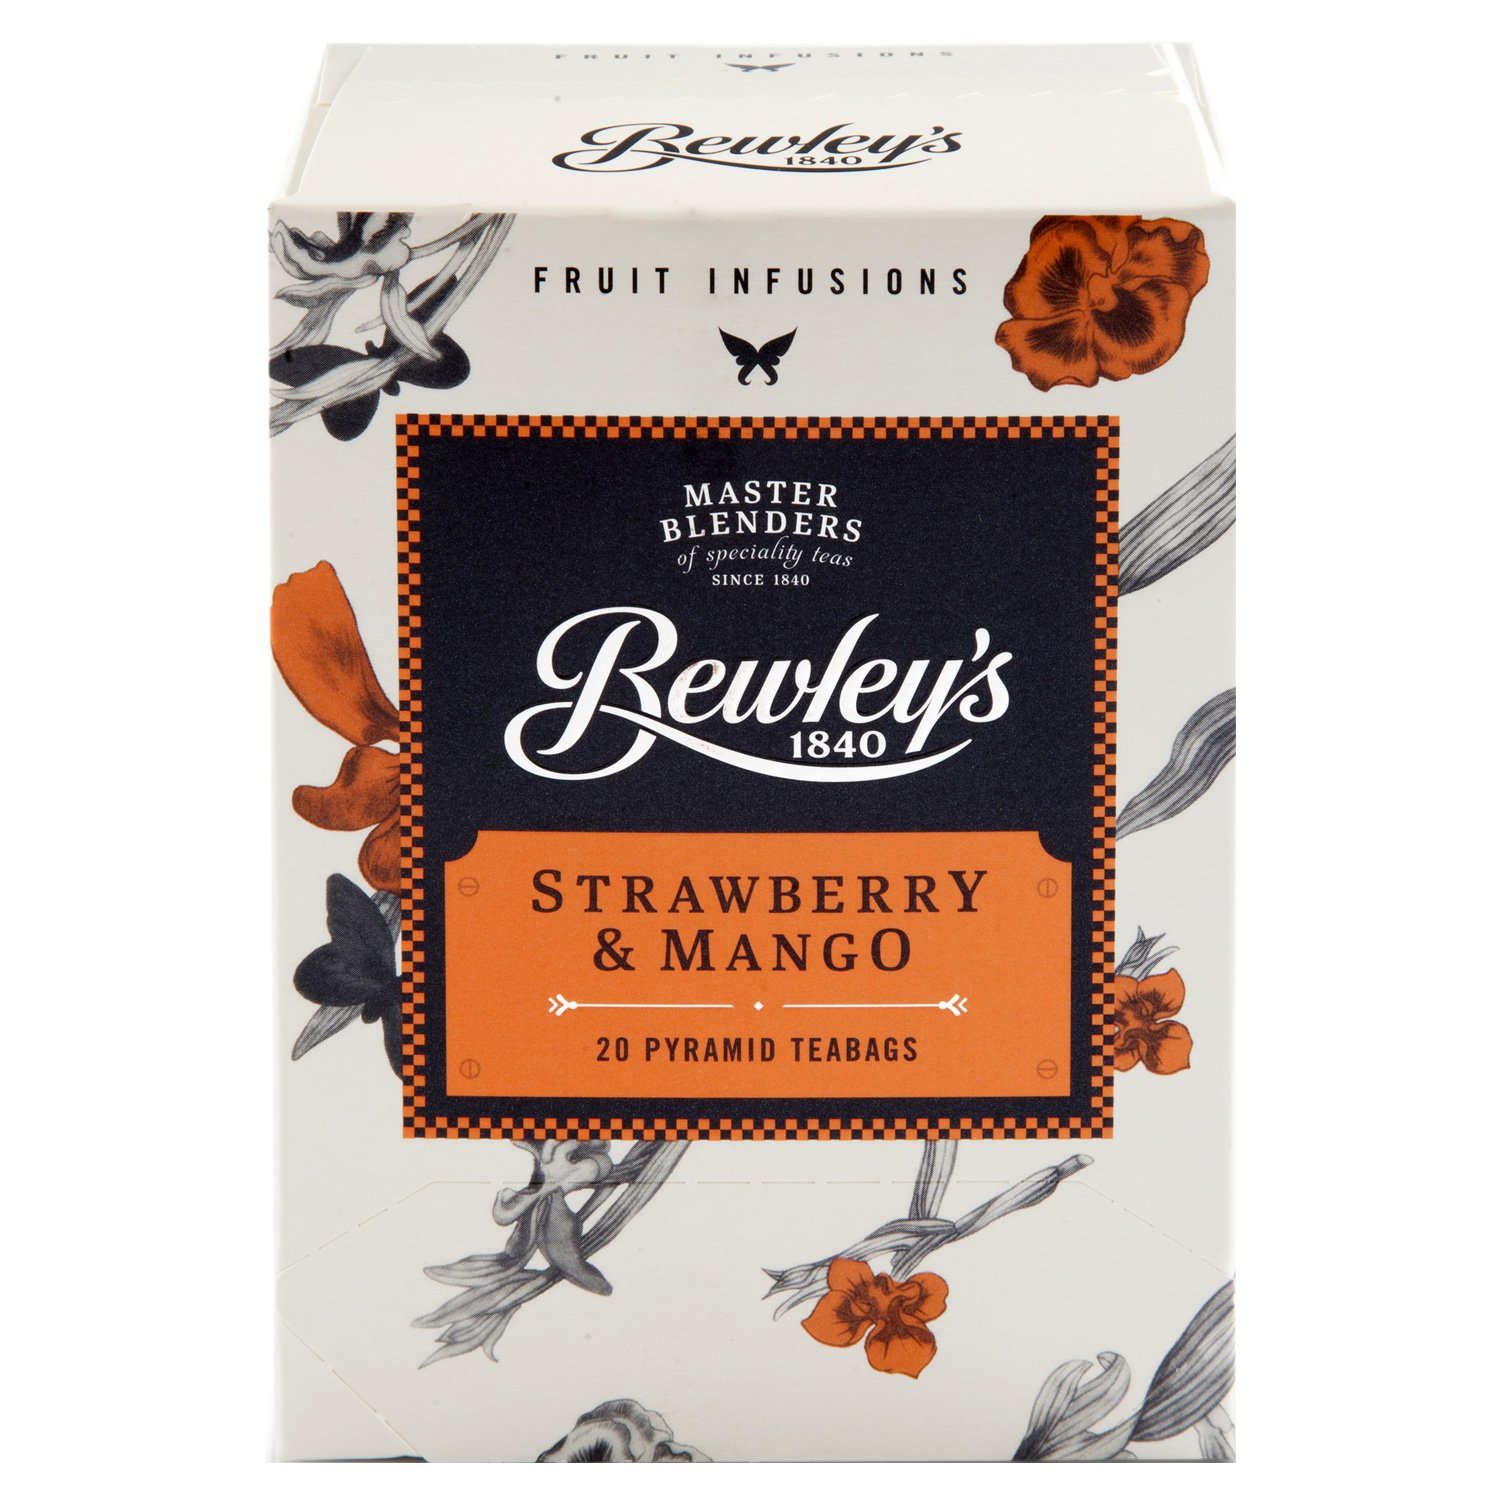 Bewley's Strawberry & Mango Pyramid Teabags – 20 Ct